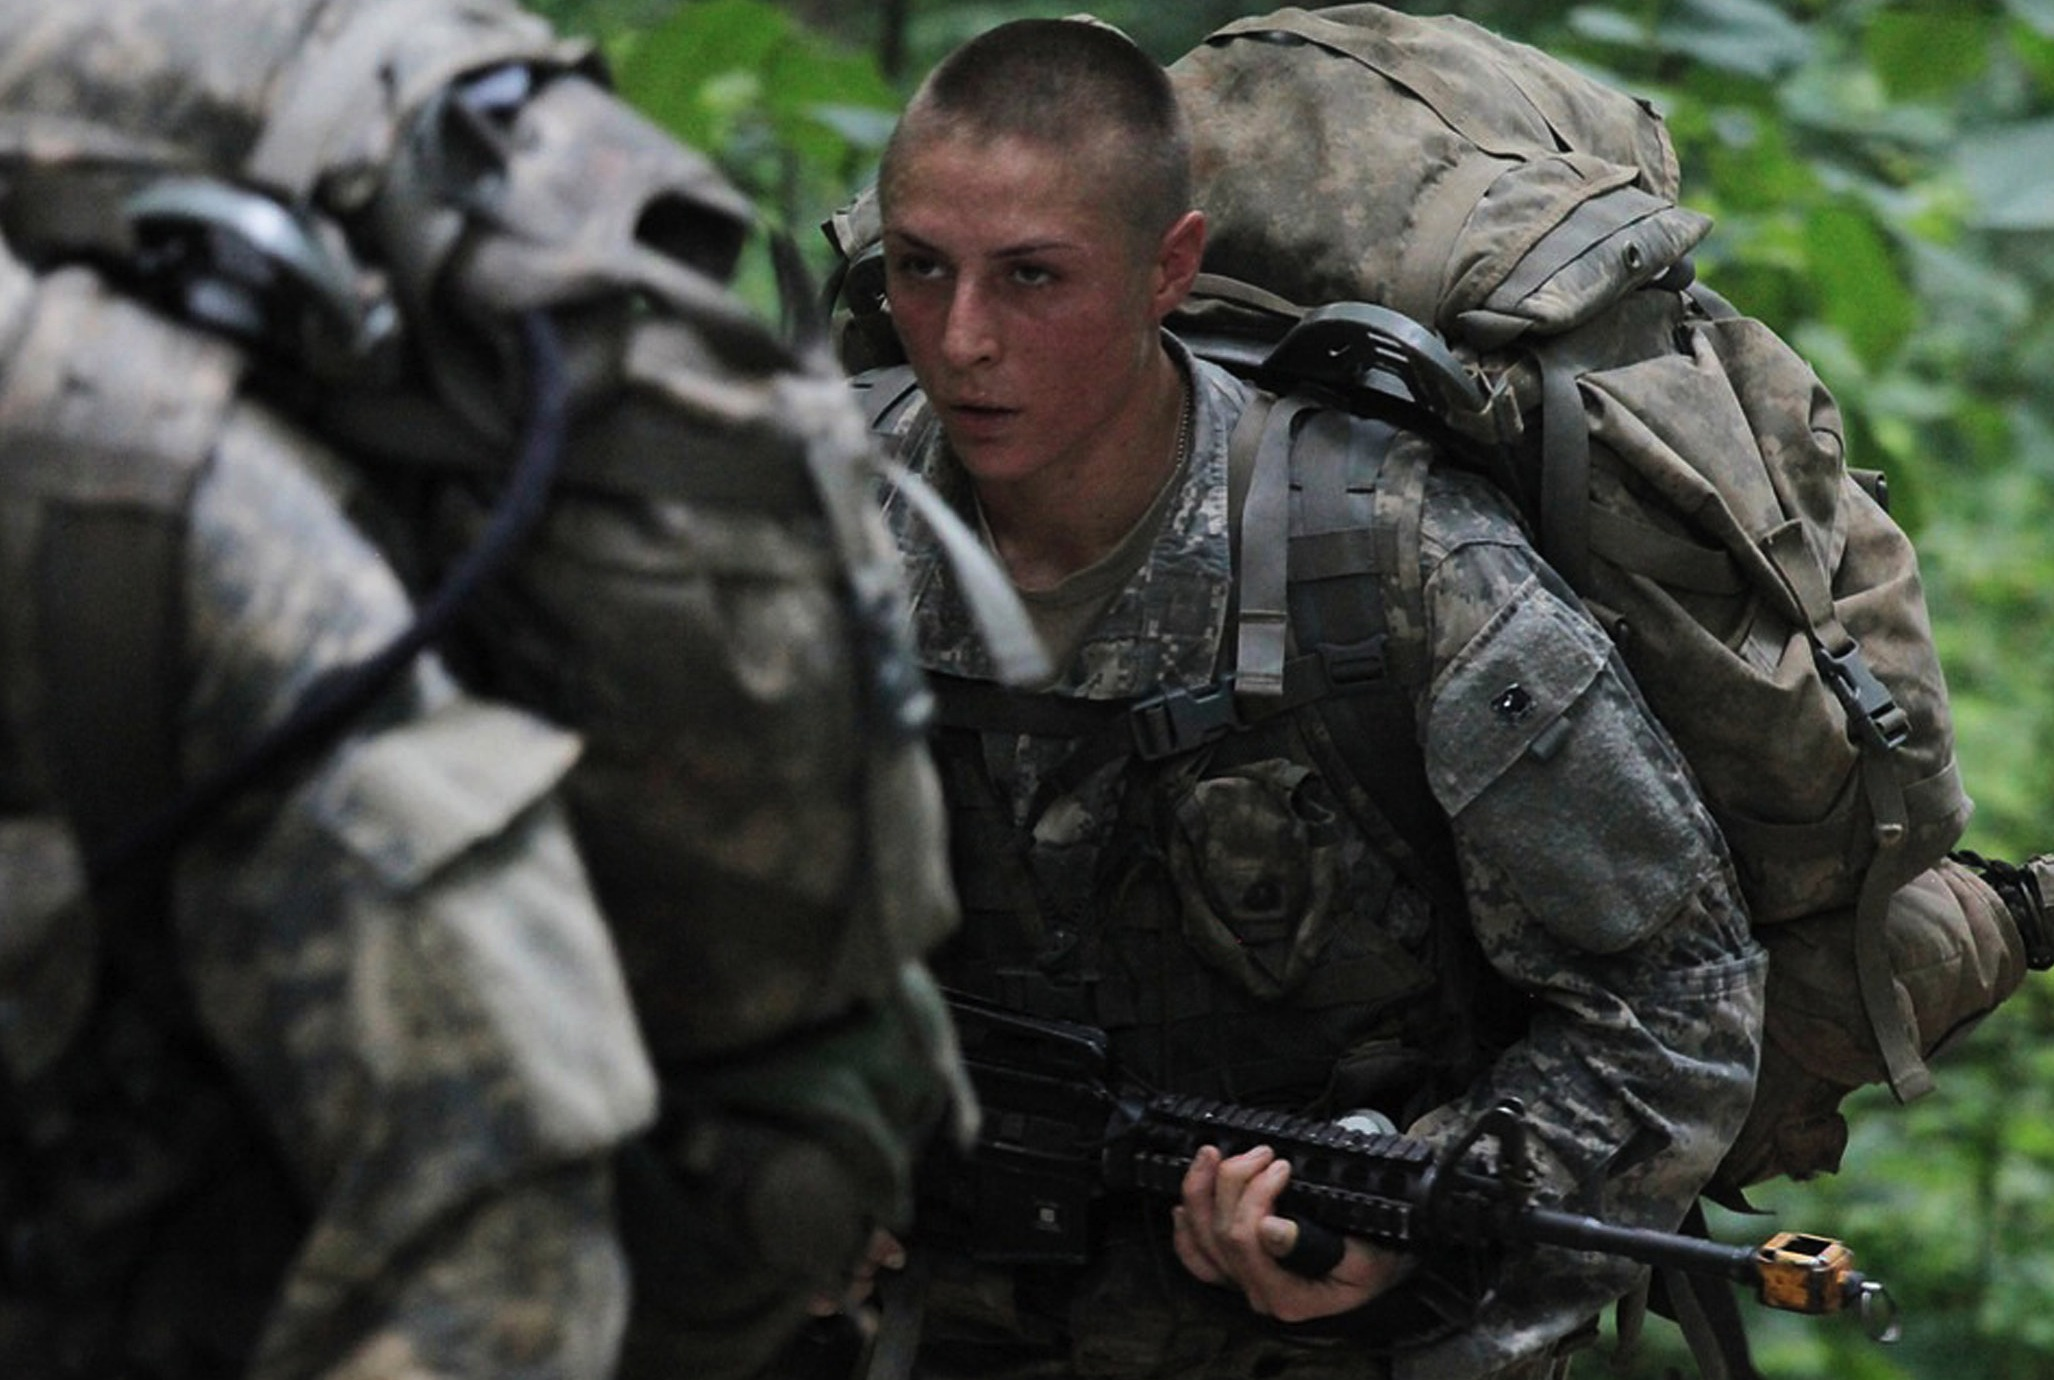 1st Lt. Shaye Haver training at the Ranger School last month.